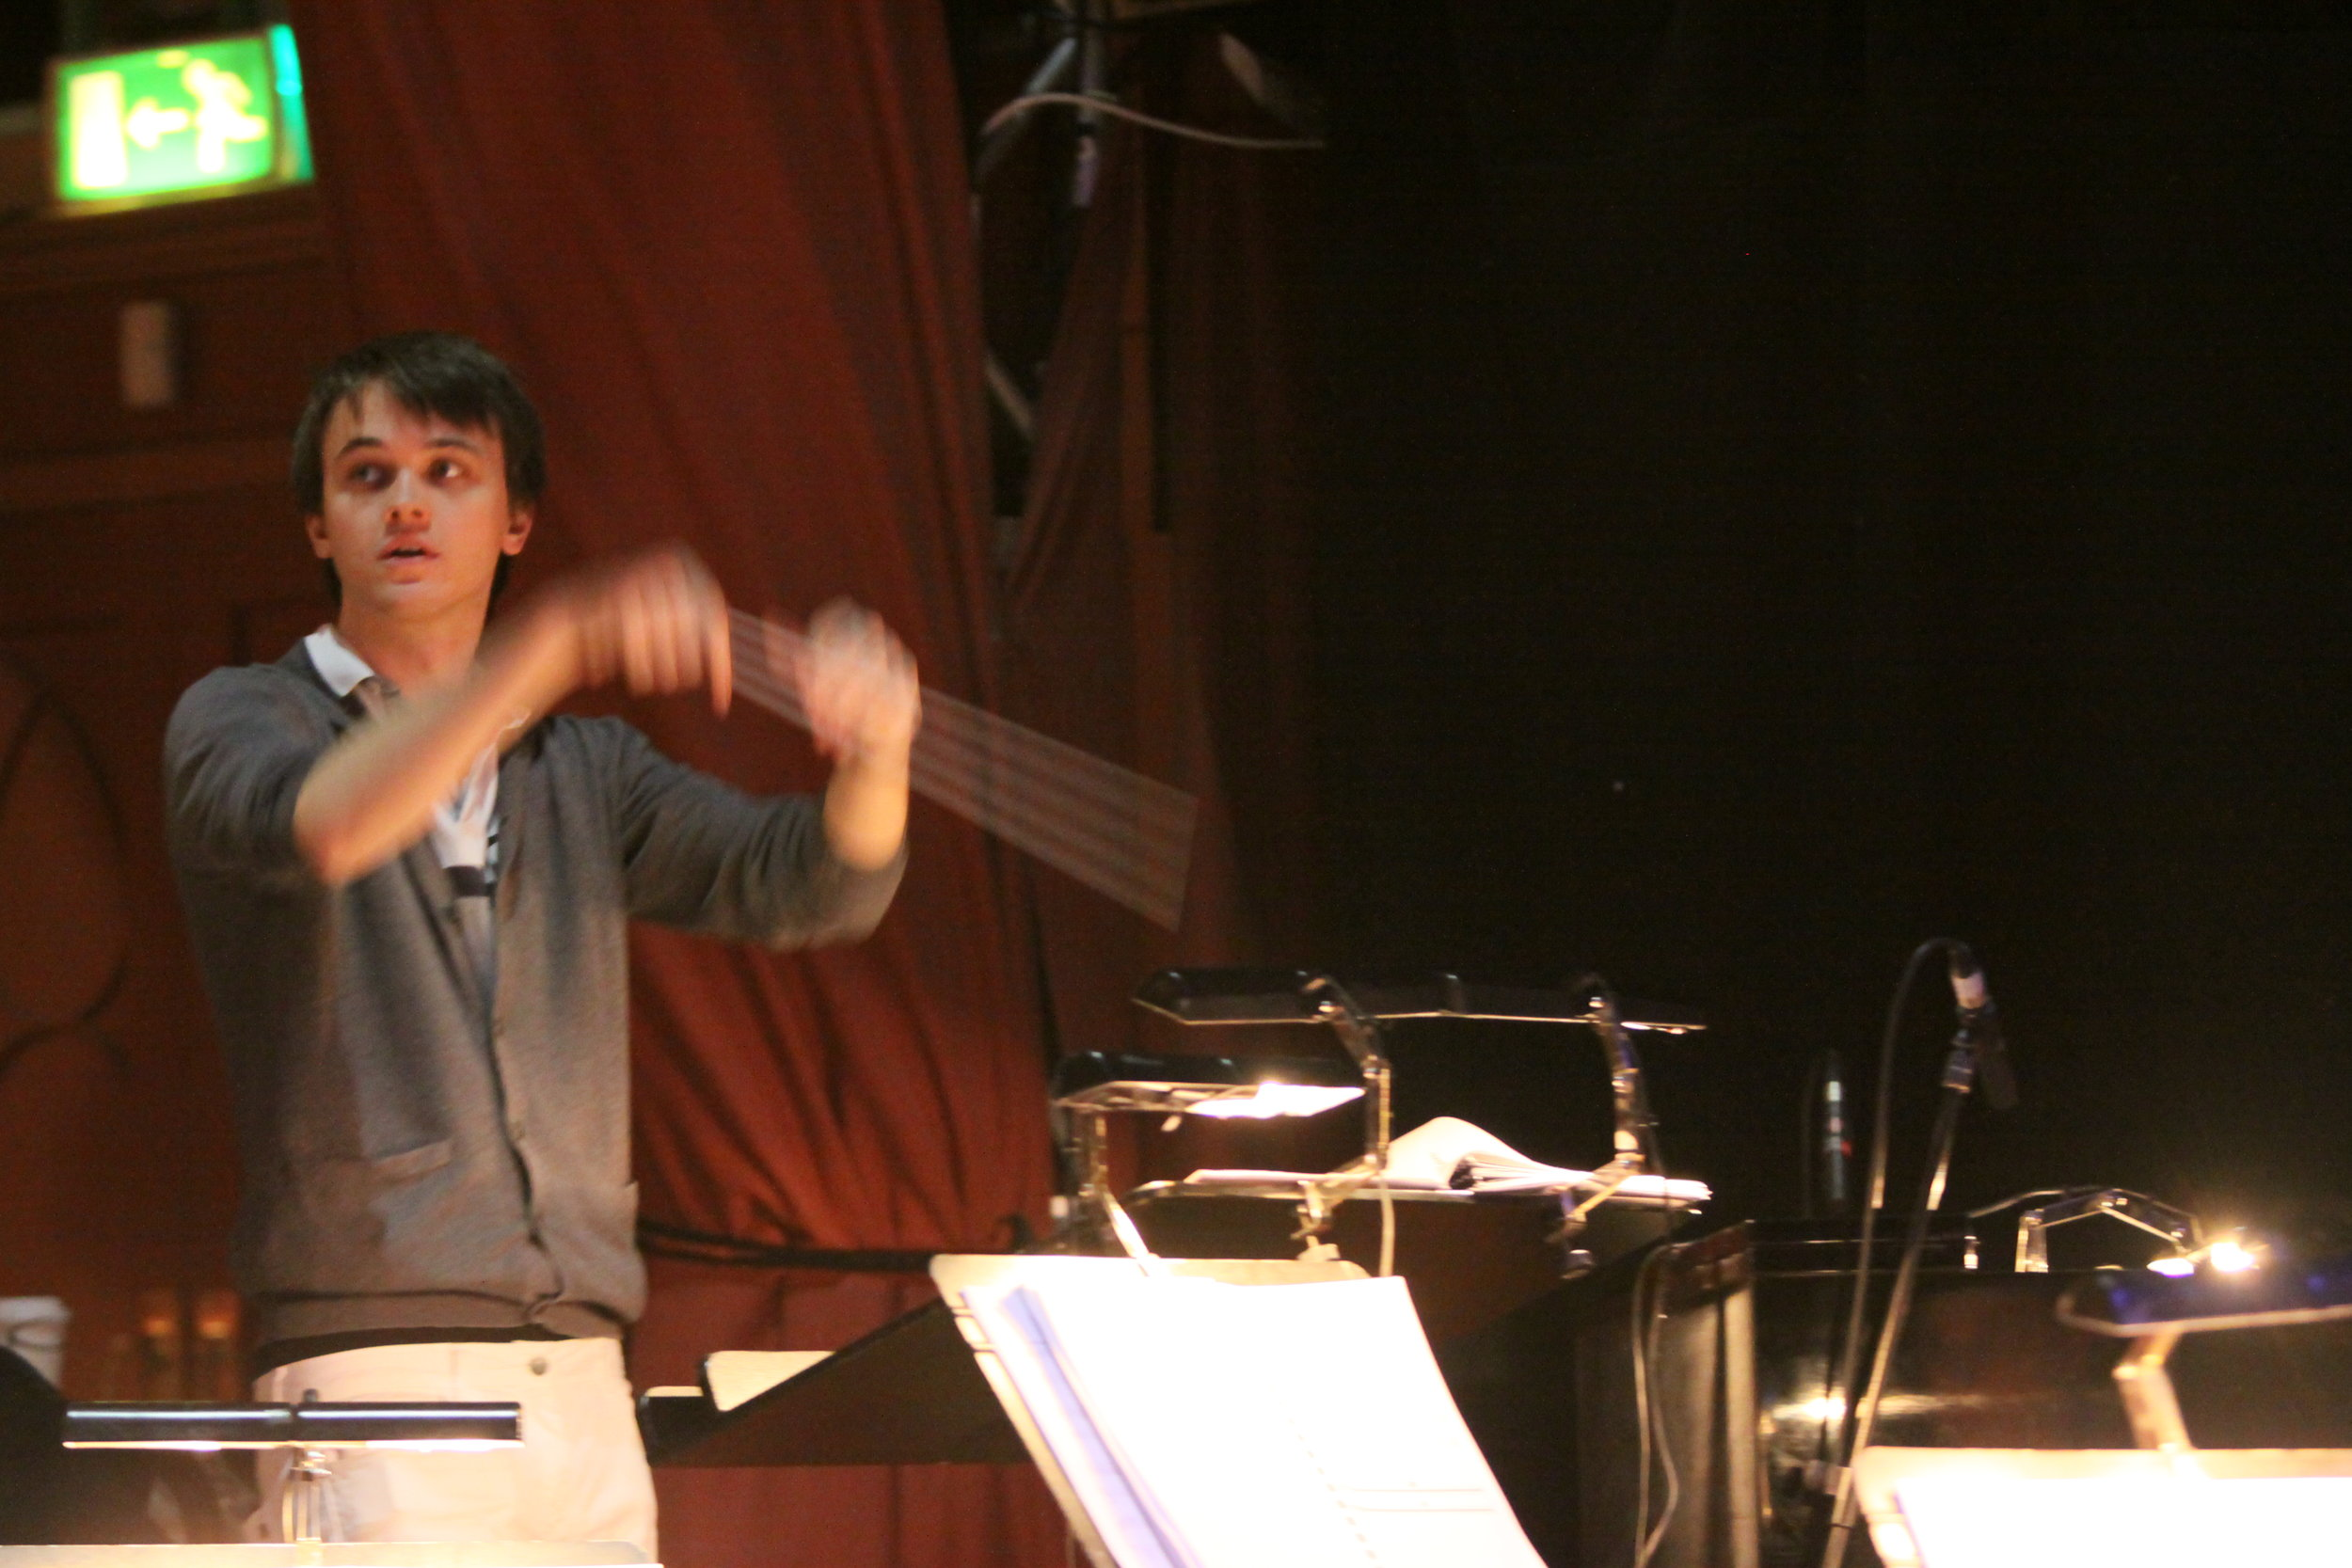 Jude conducting Forbidden Fruit, Brighton Festival, Brighton Dome, composed by Jude Obermüller (photo by Sarah Sutherland-Rowe)